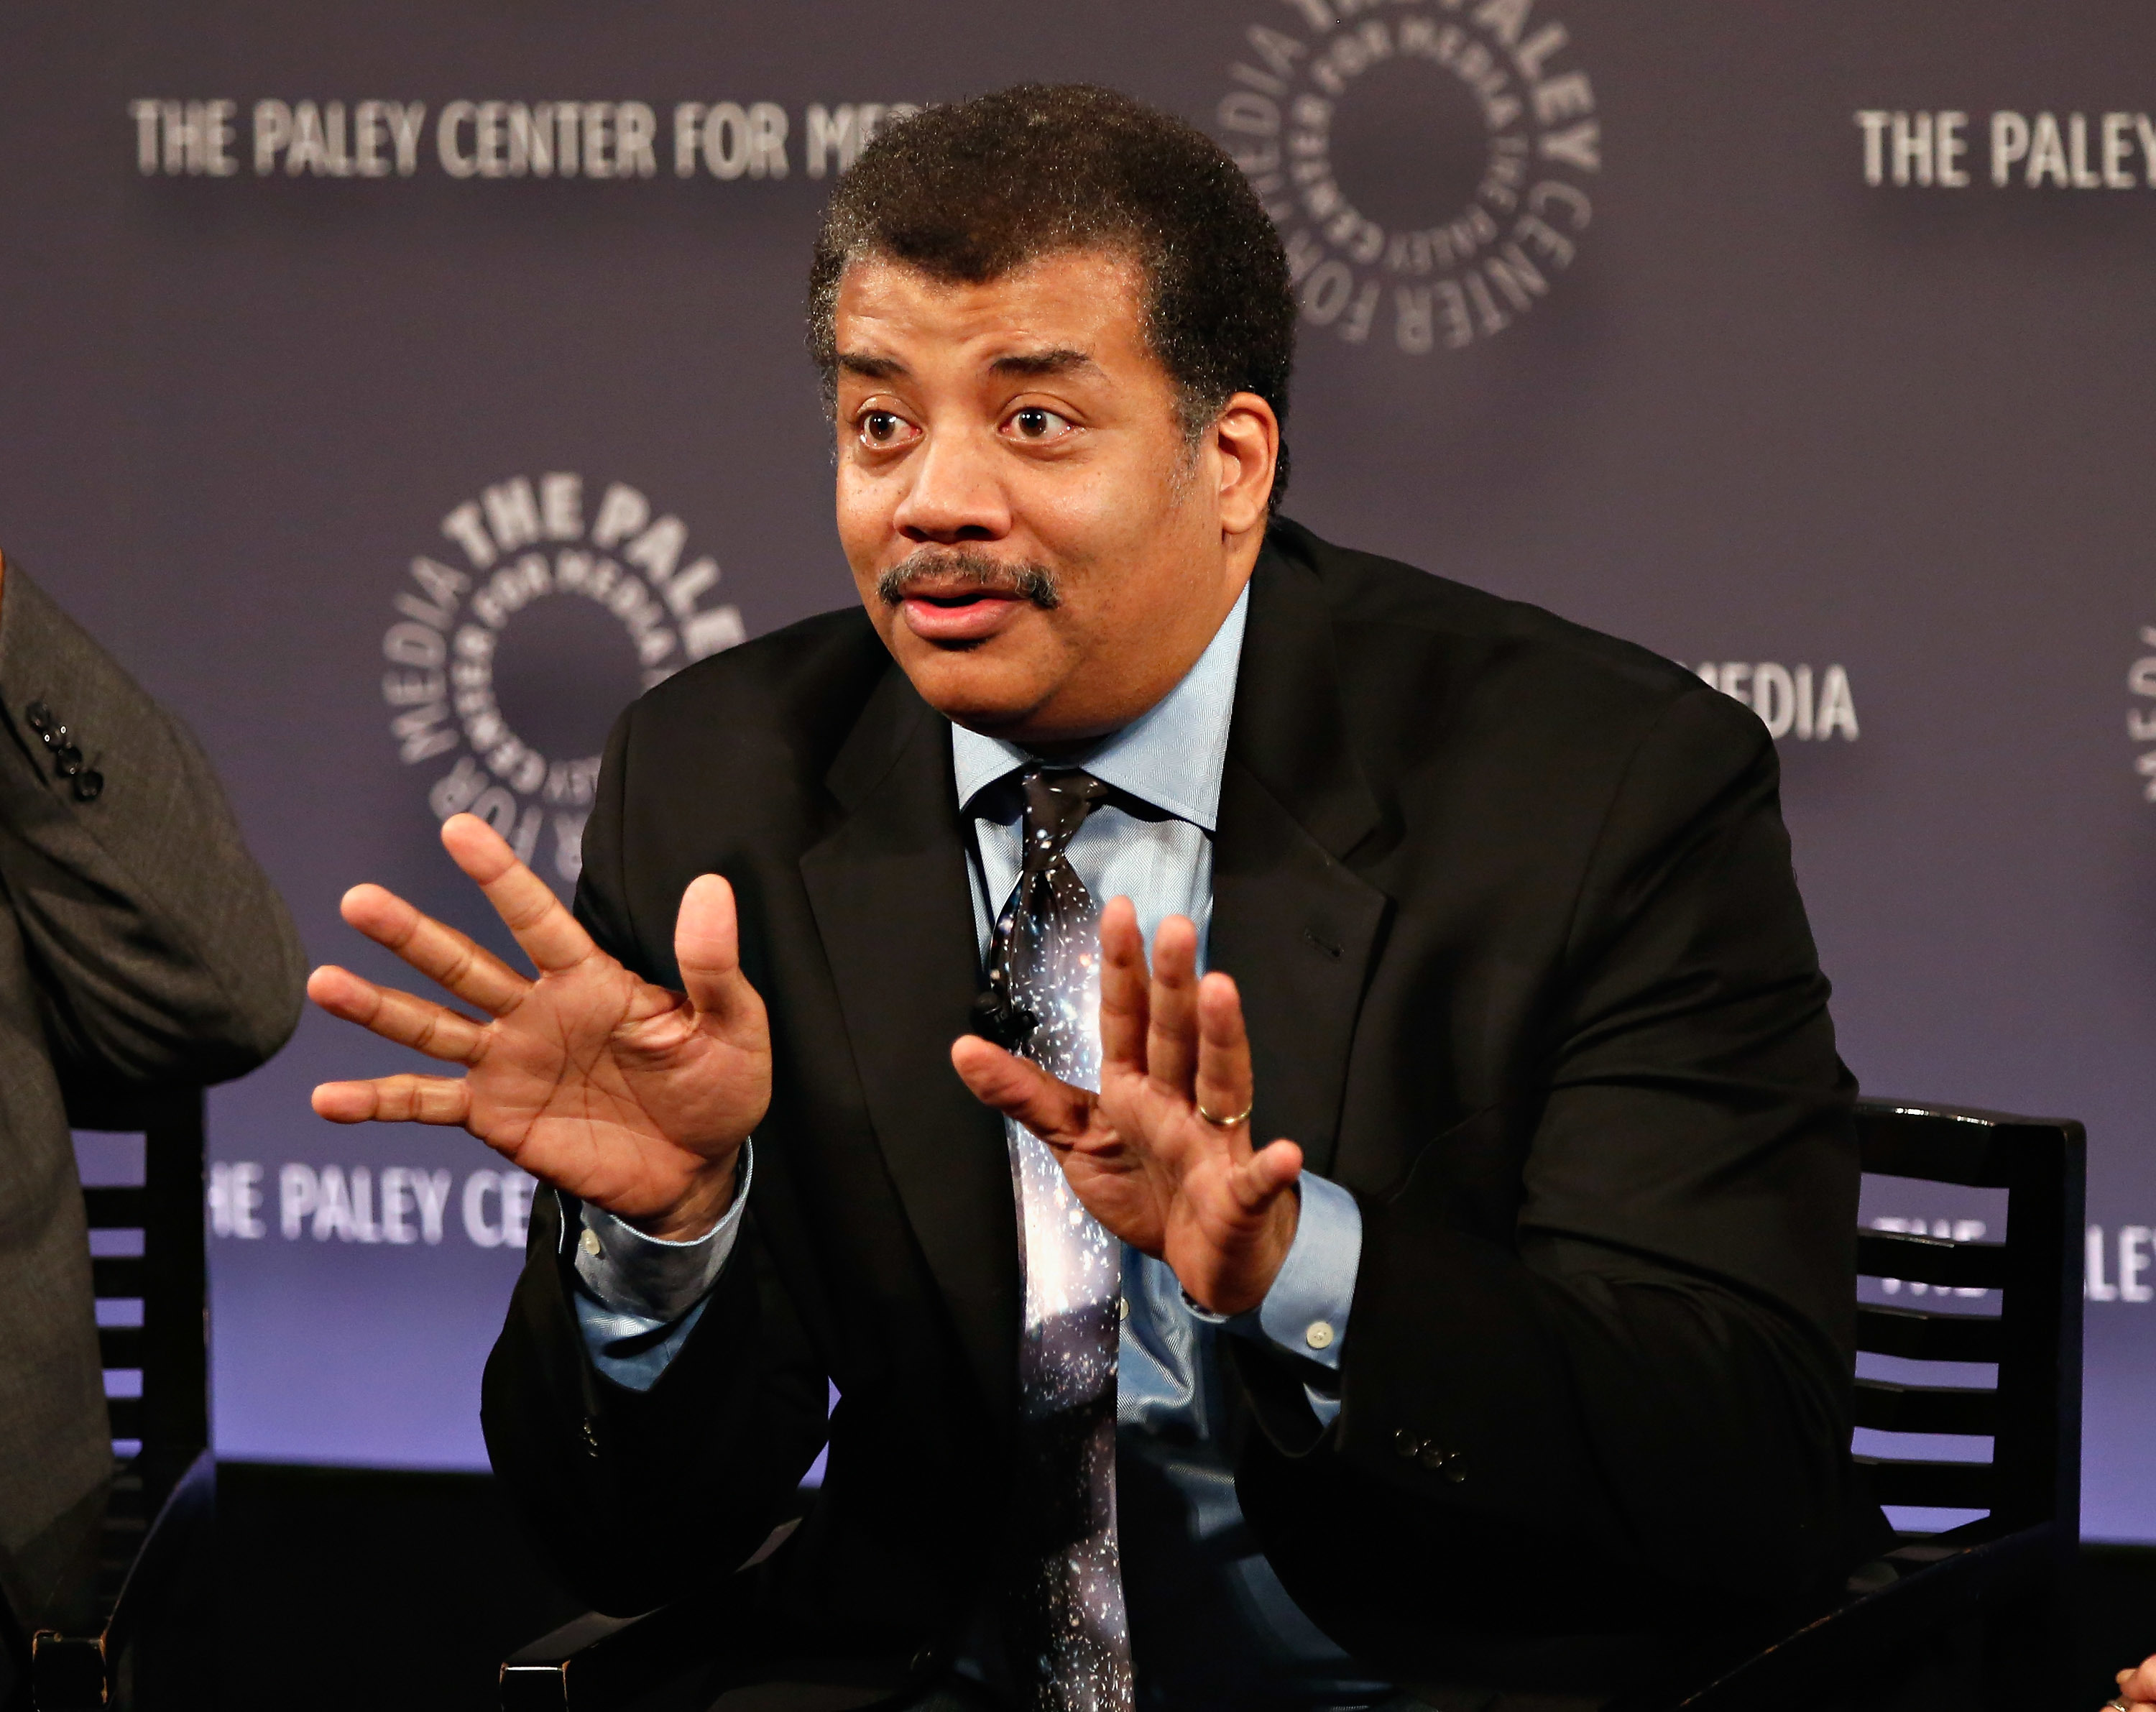 Neil deGrasse Tyson Finally Addresses Why His Tweets Are So